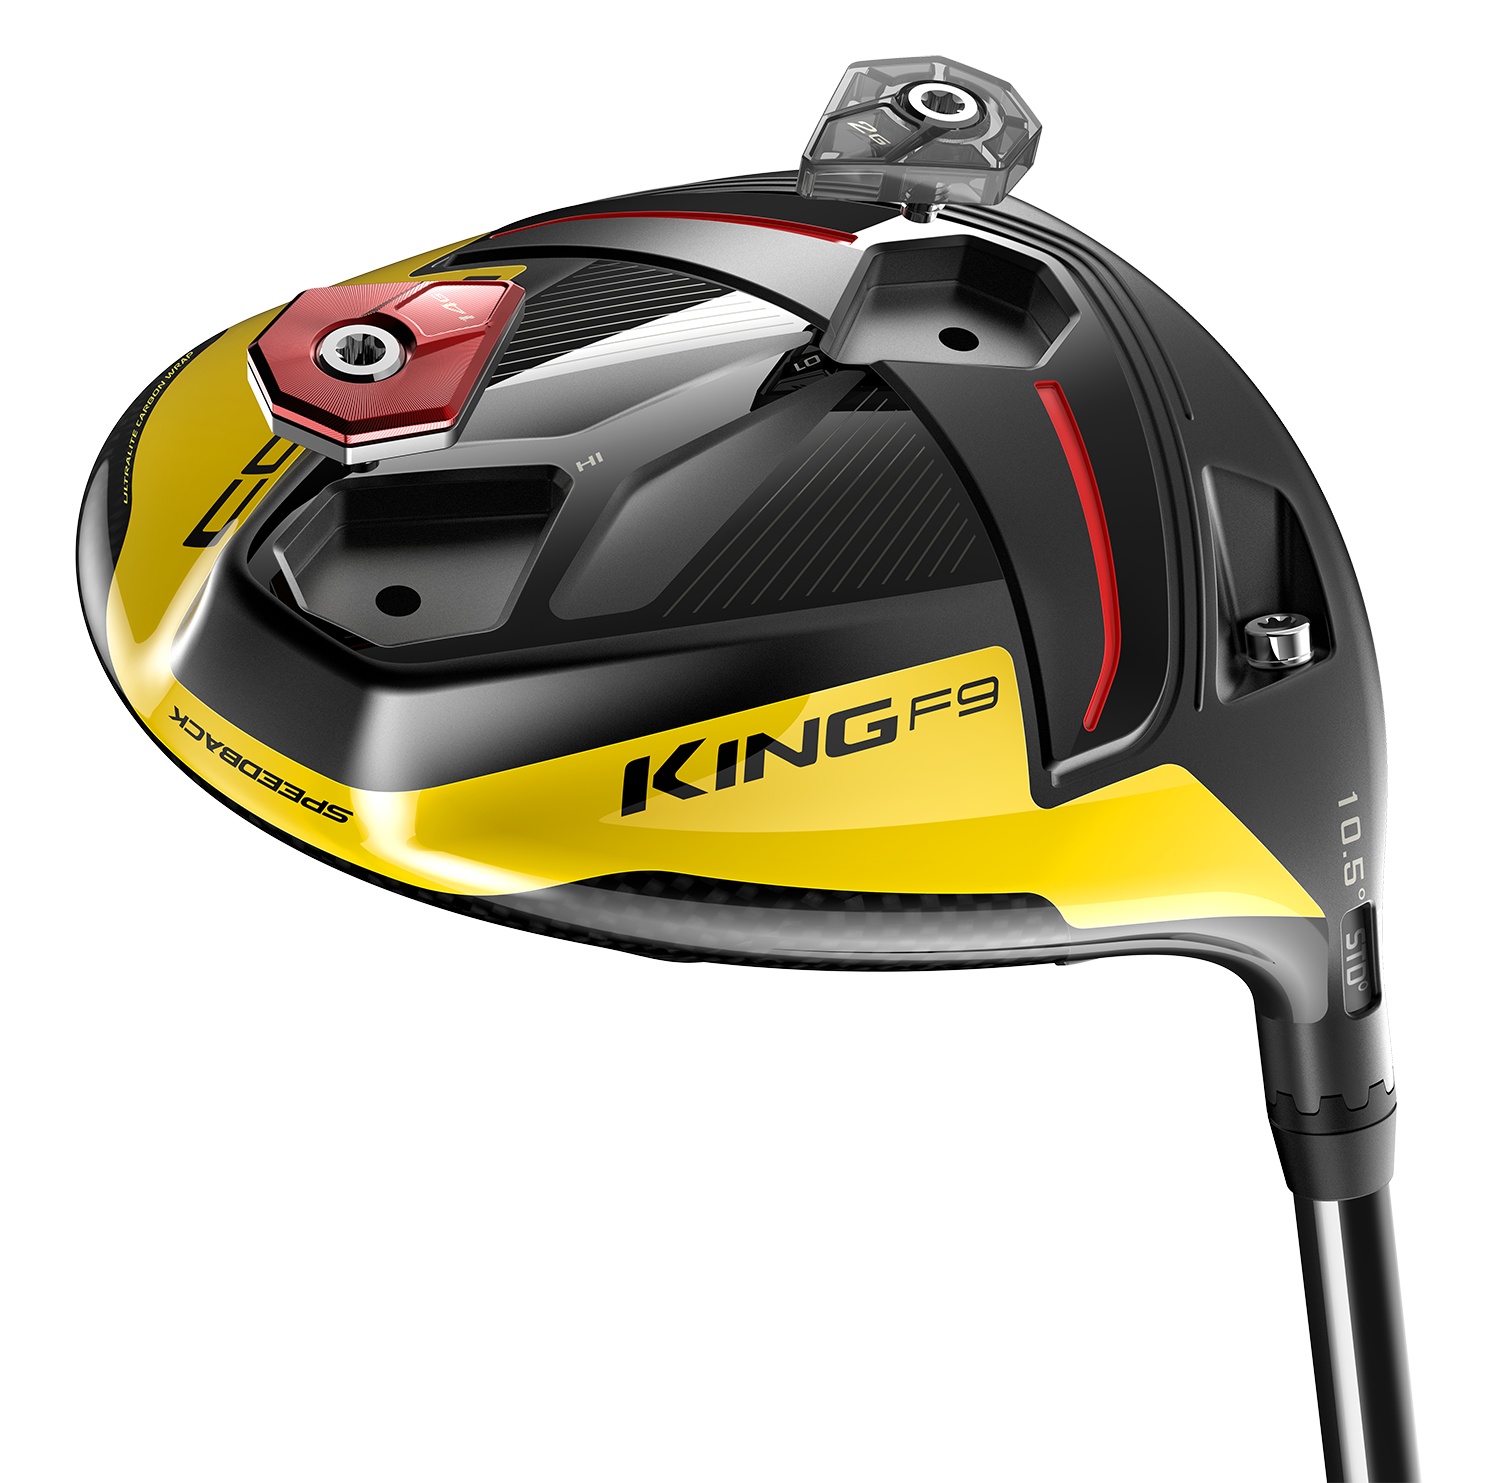 Cobra Golf launch King F9 Speedback Metalwoods